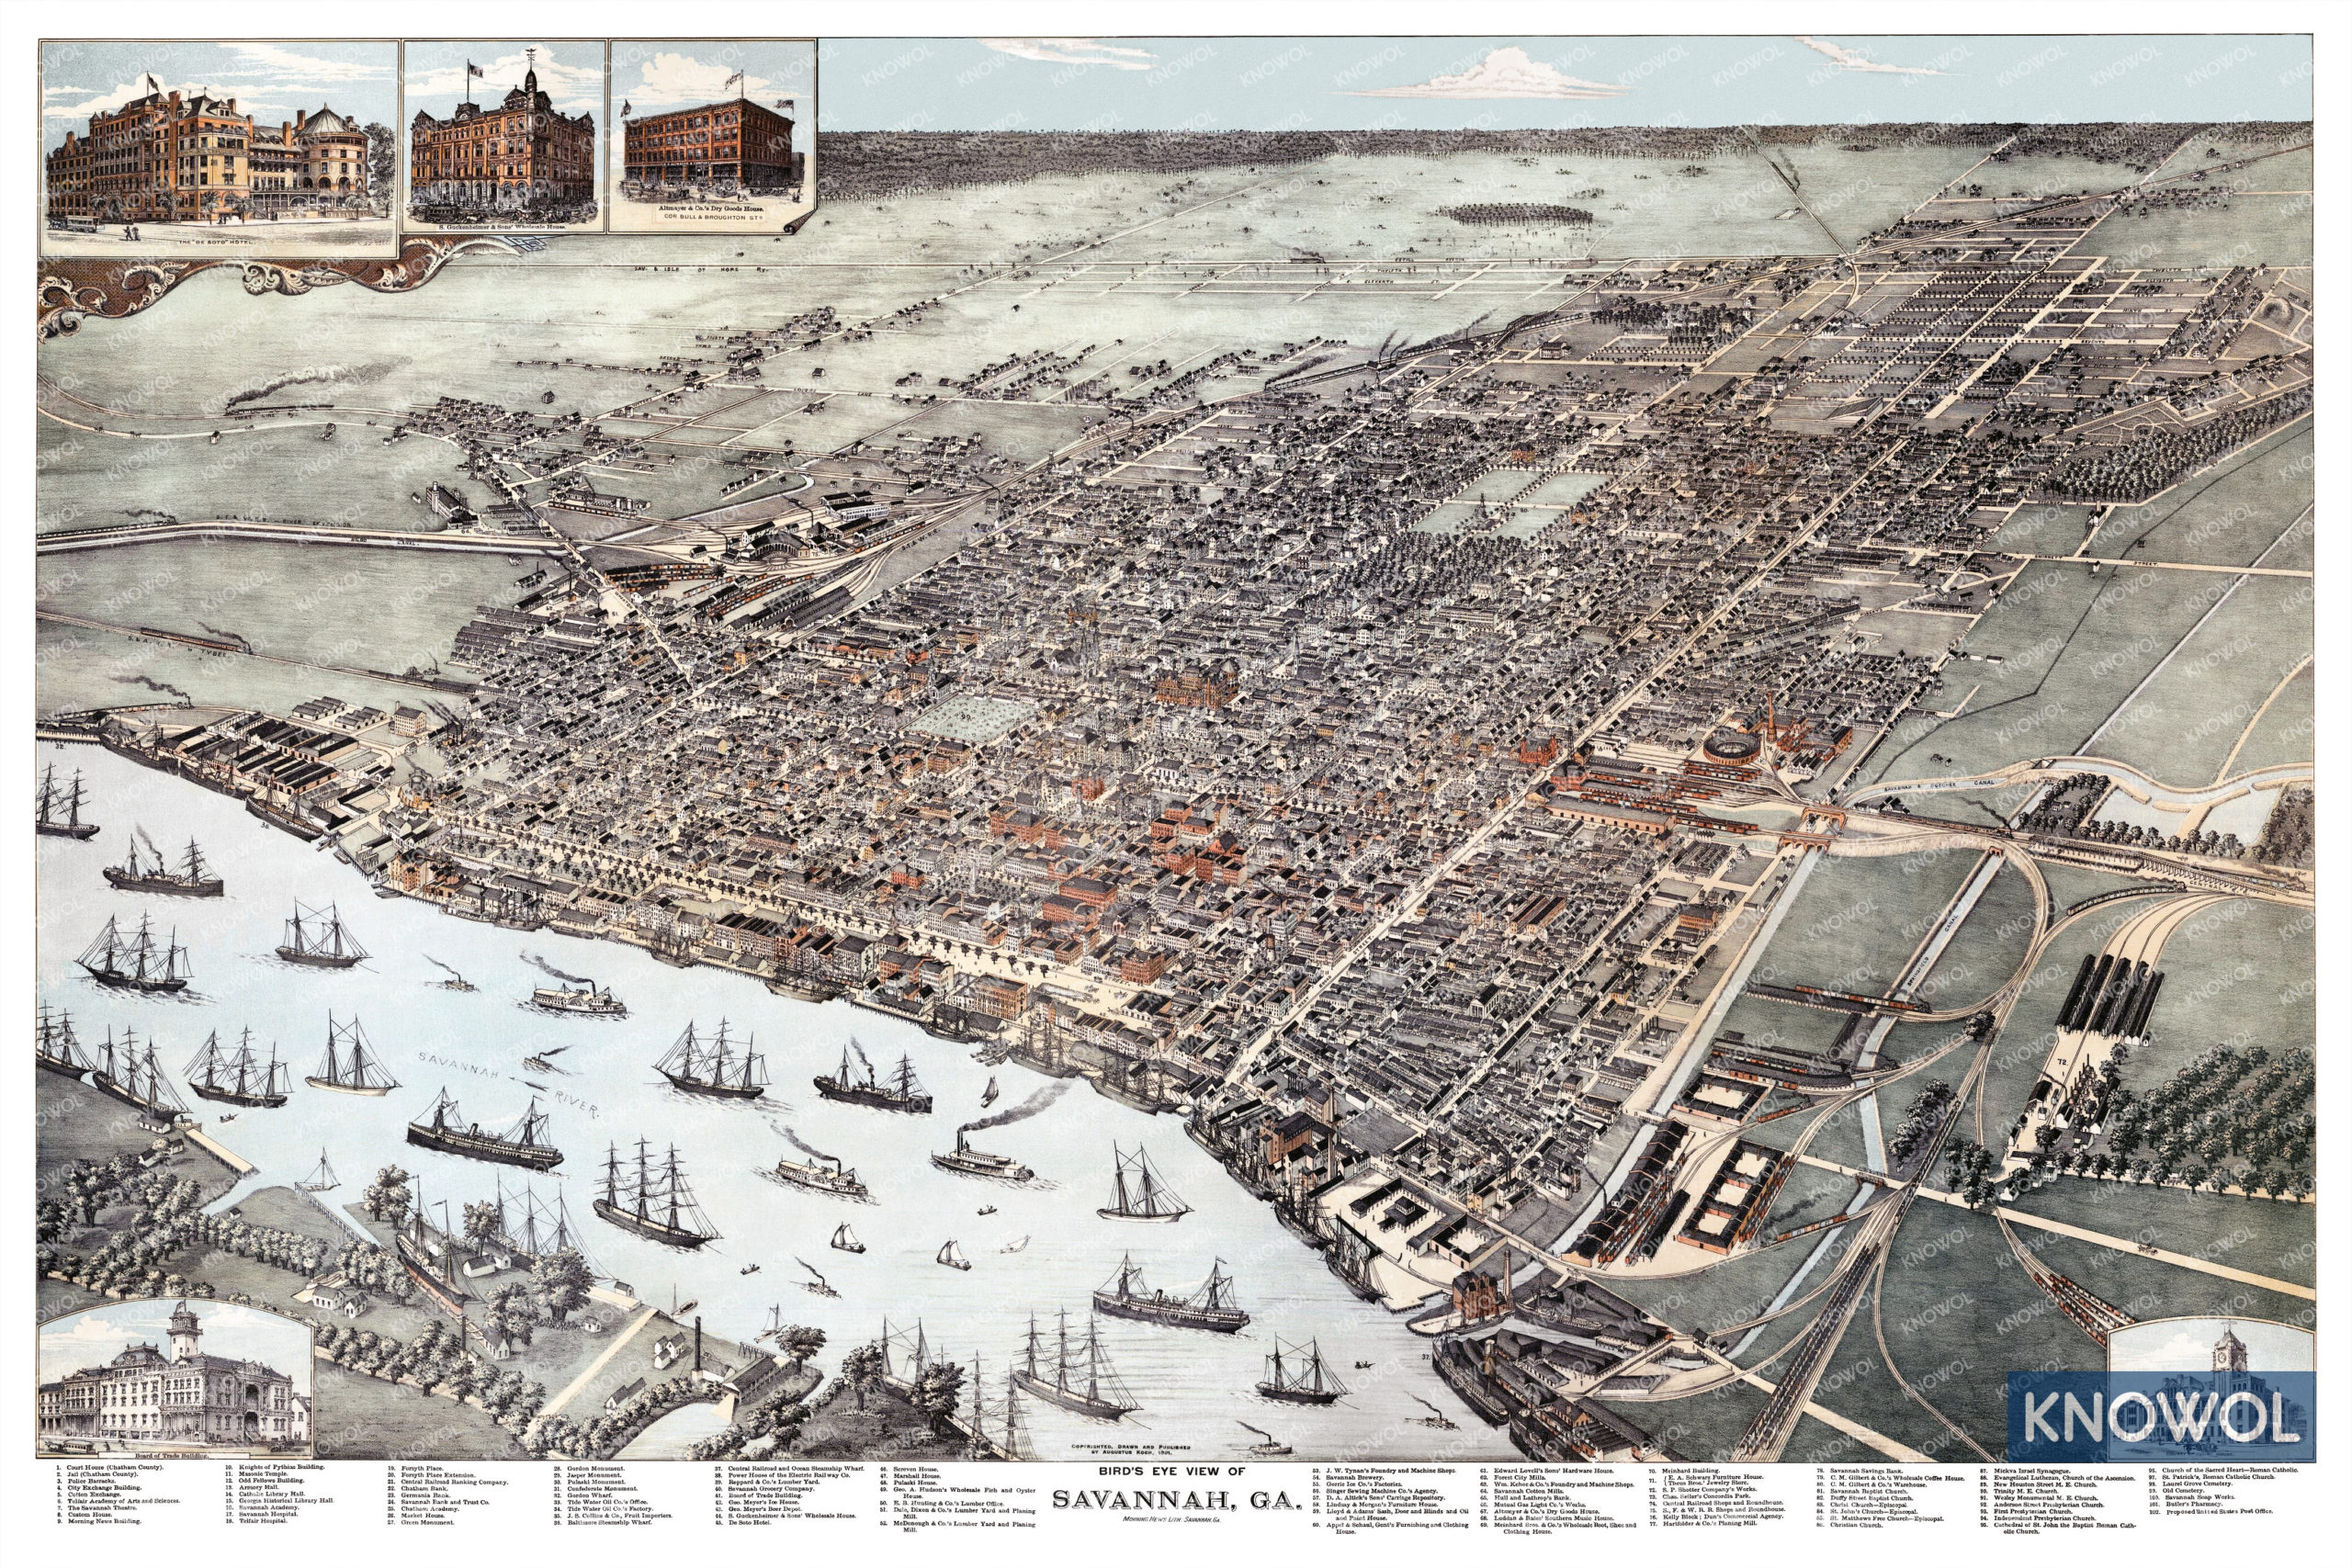 Beautifully restored map of Savannah, Georgia from 1891 - KNOWOL on map of savannah college of art and design, map of savannah ga and surrounding area, map of savannah national wildlife refuge, map of charleston sc historic district, map of downtown savannah, map of savannah airport, map of historic savannah ga,